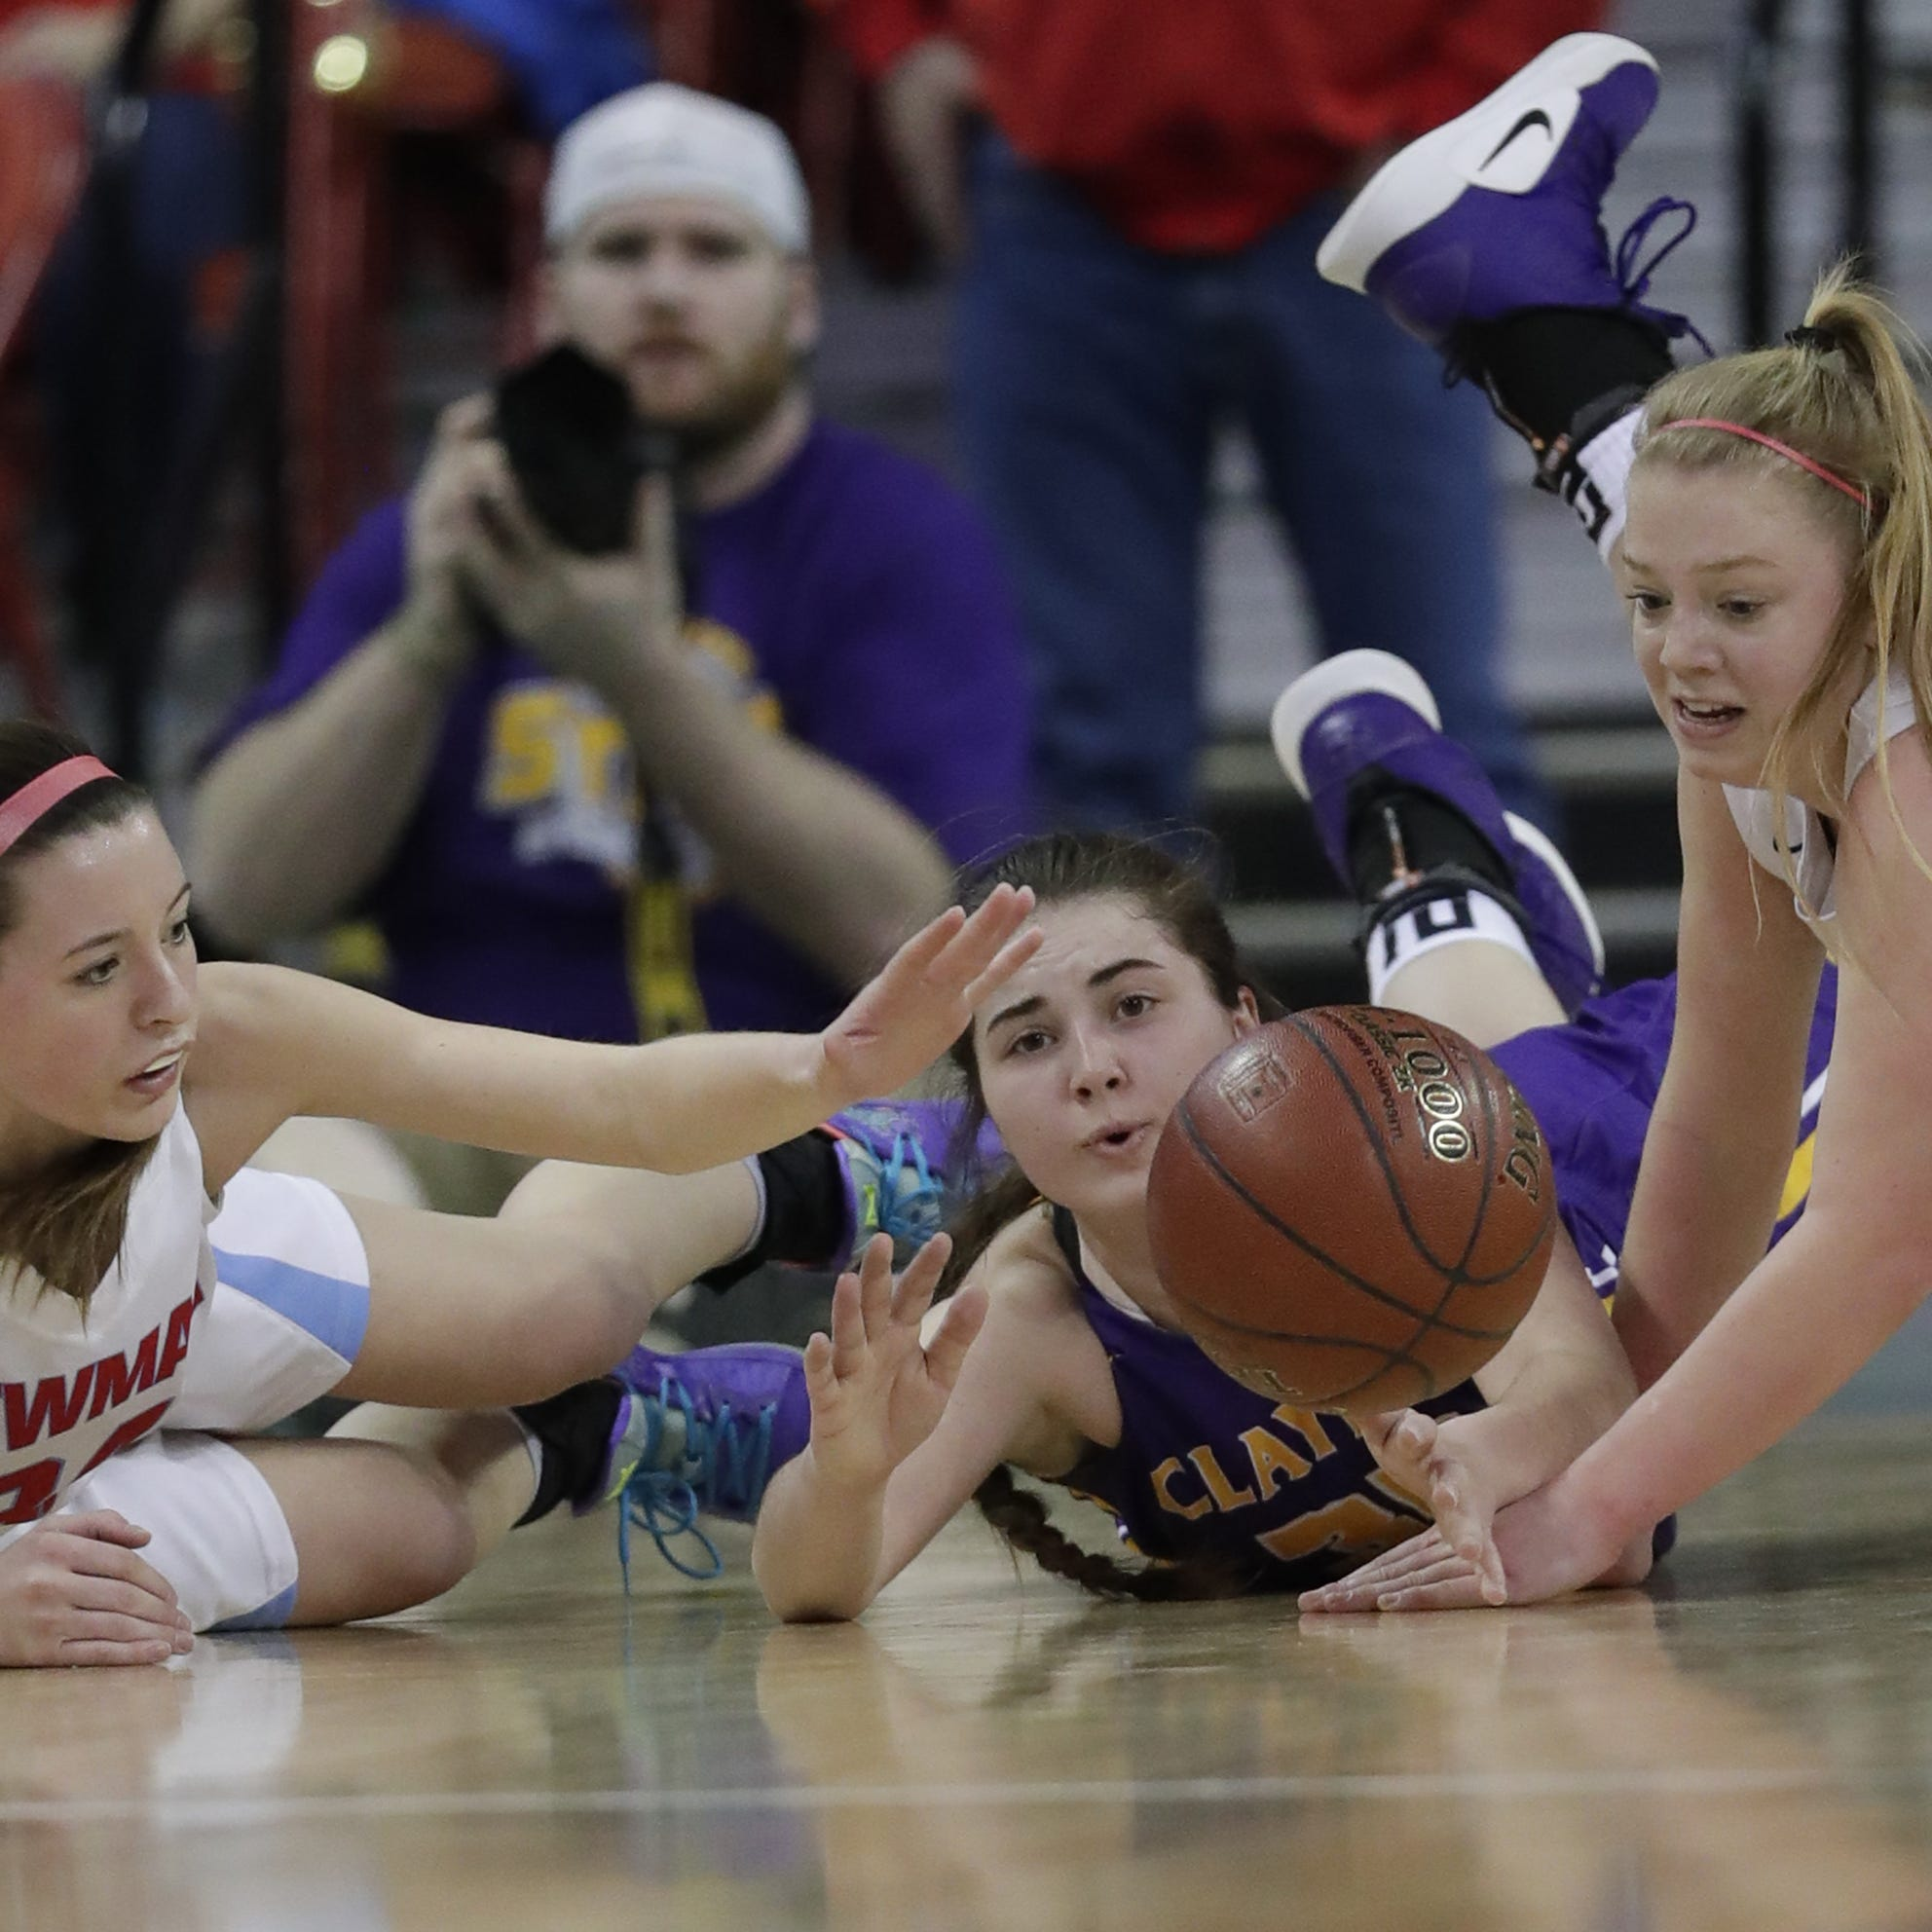 Furious Clayton rally sinks Newman Catholic in WIAA state girls basketball semifinal